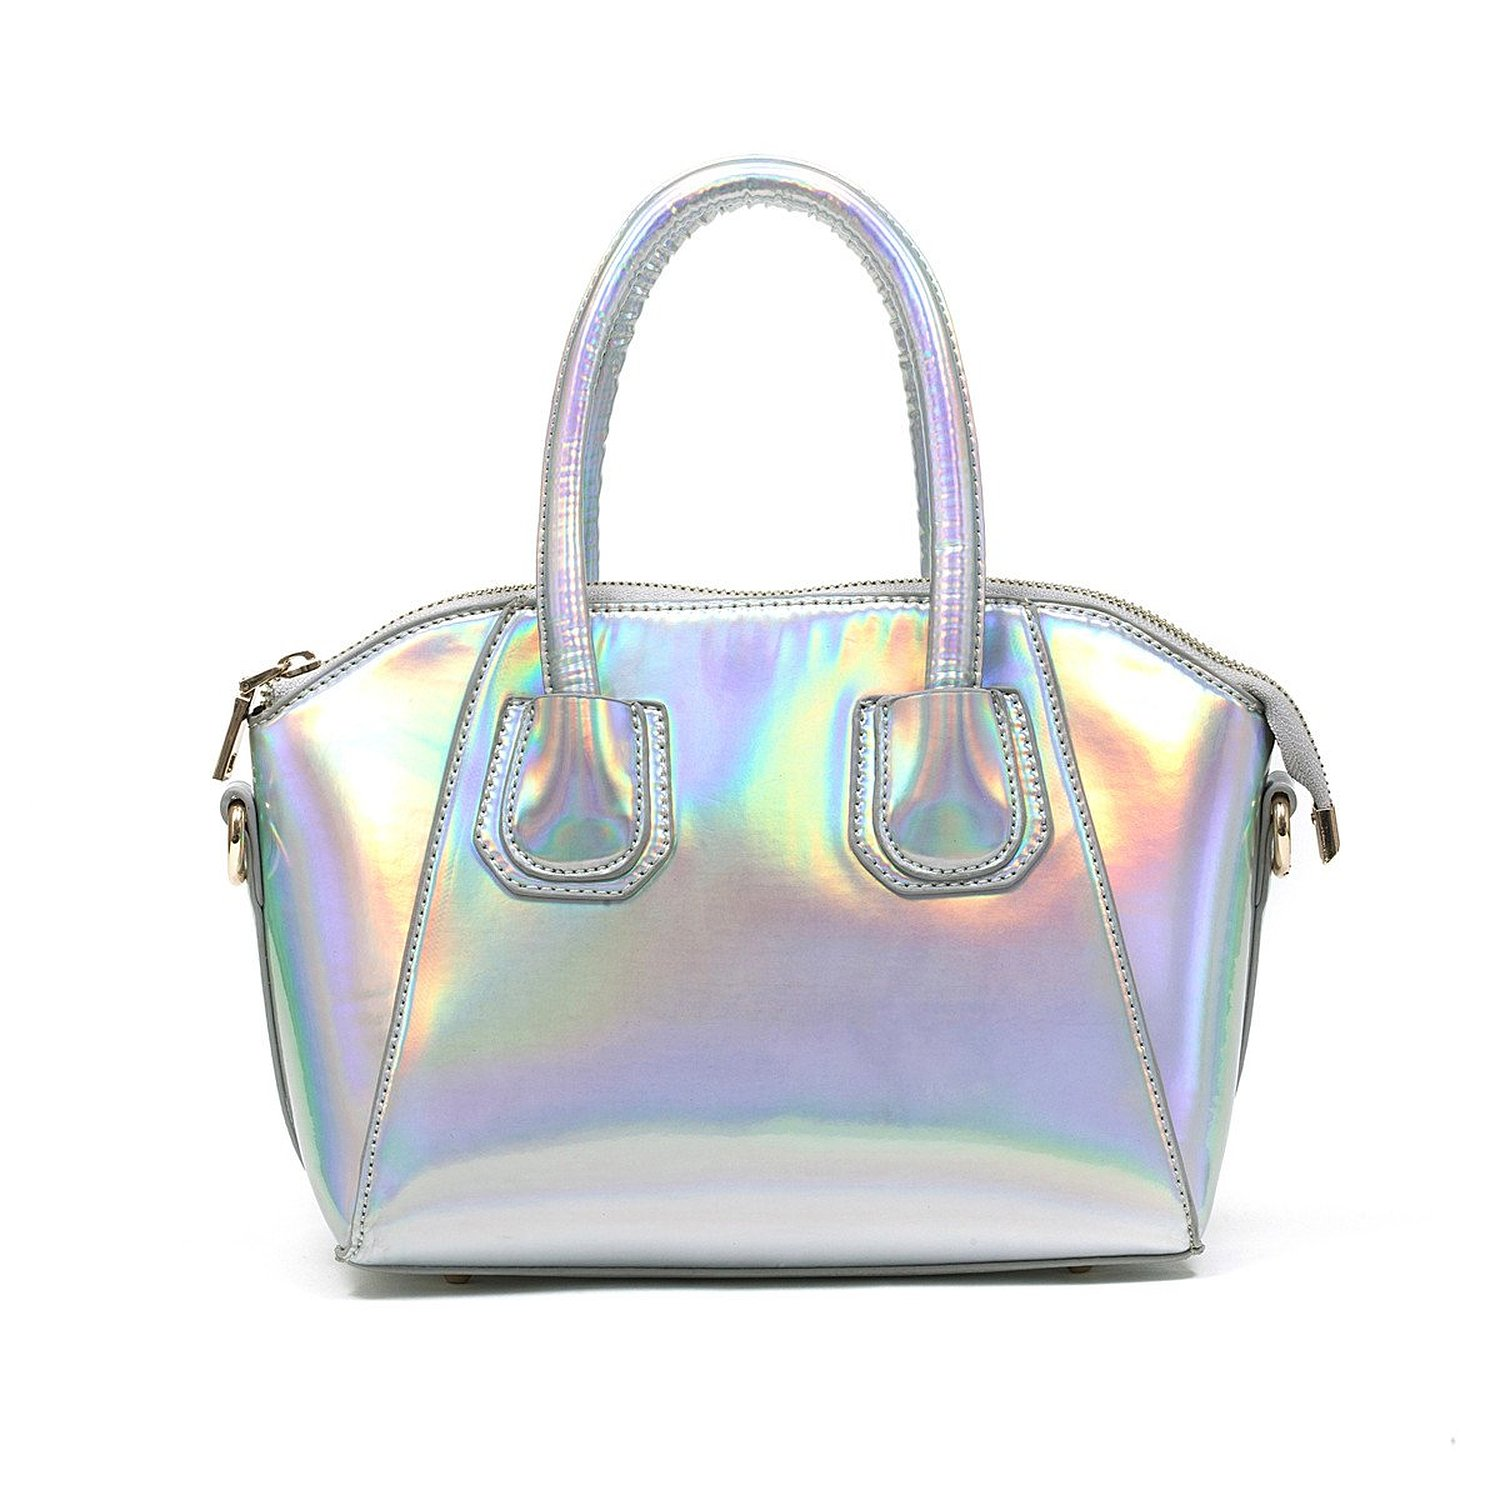 Zarapack Women's Pu Leather Hologram Handbag Purse Shoulder Ba: Handbags: Amazon.com